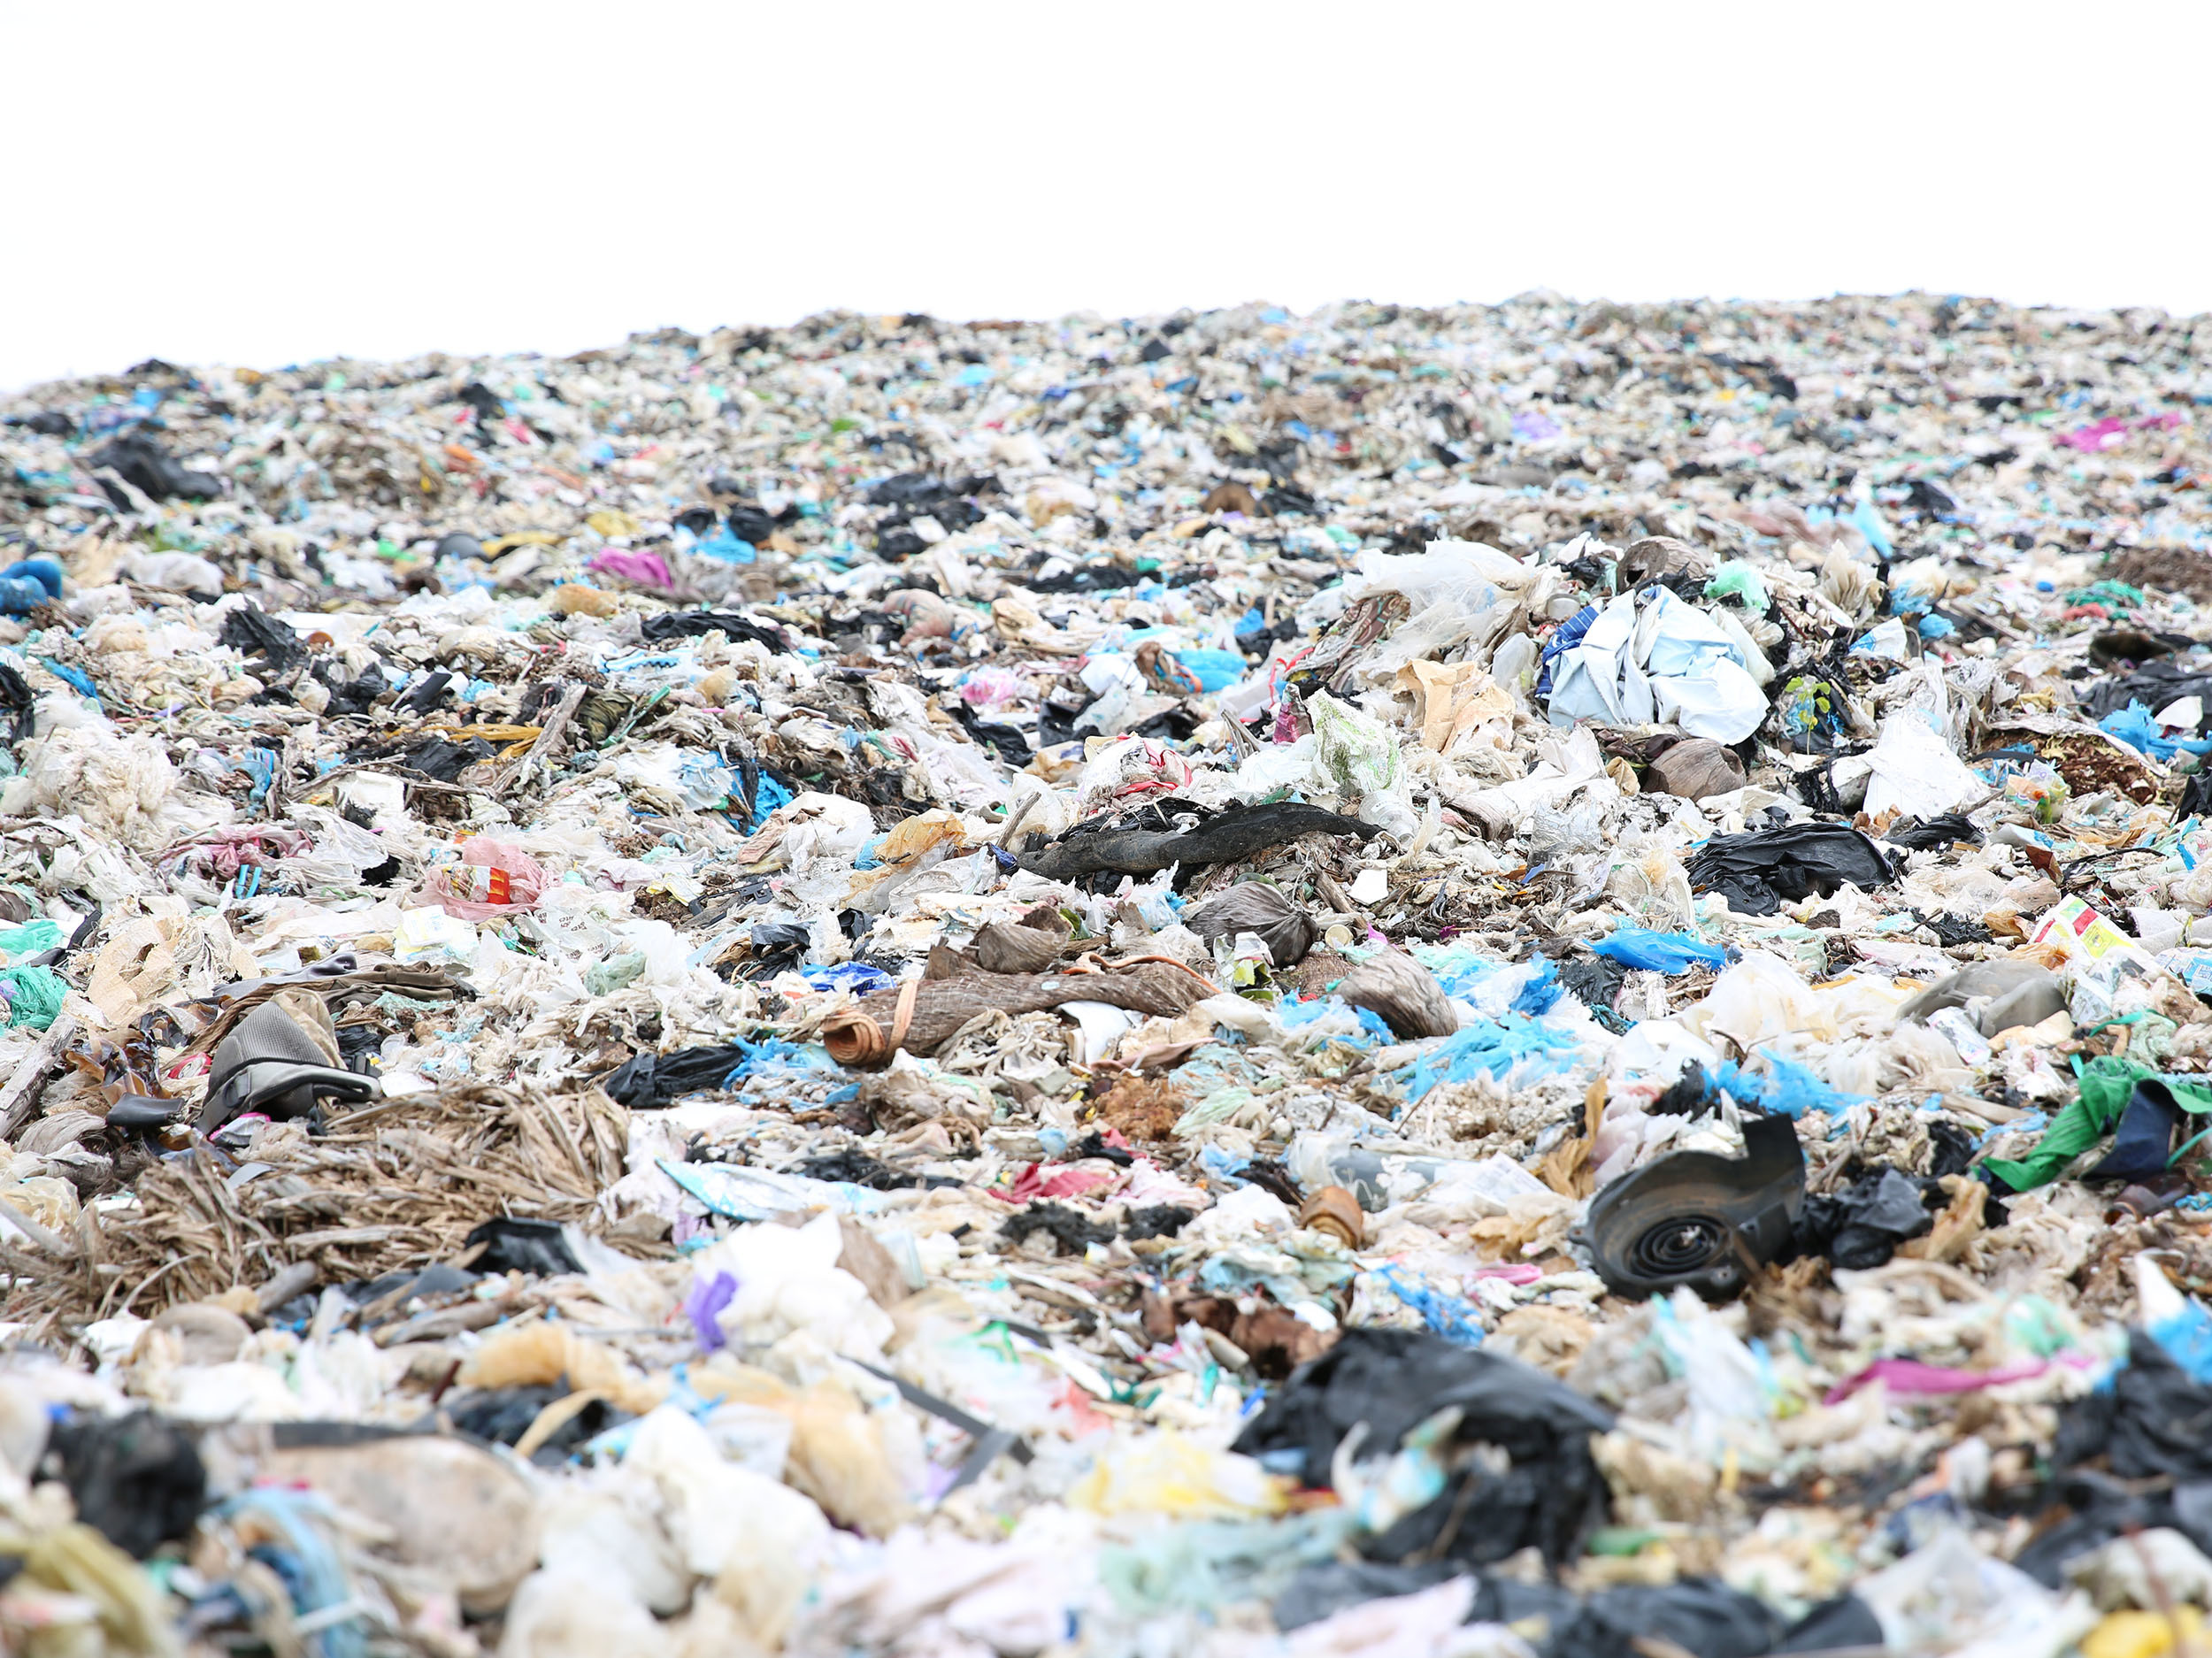 What a load of rubbish: A quarter of trash in Kyrgyzstan's landfills is plastic. (Photo: UNDP)